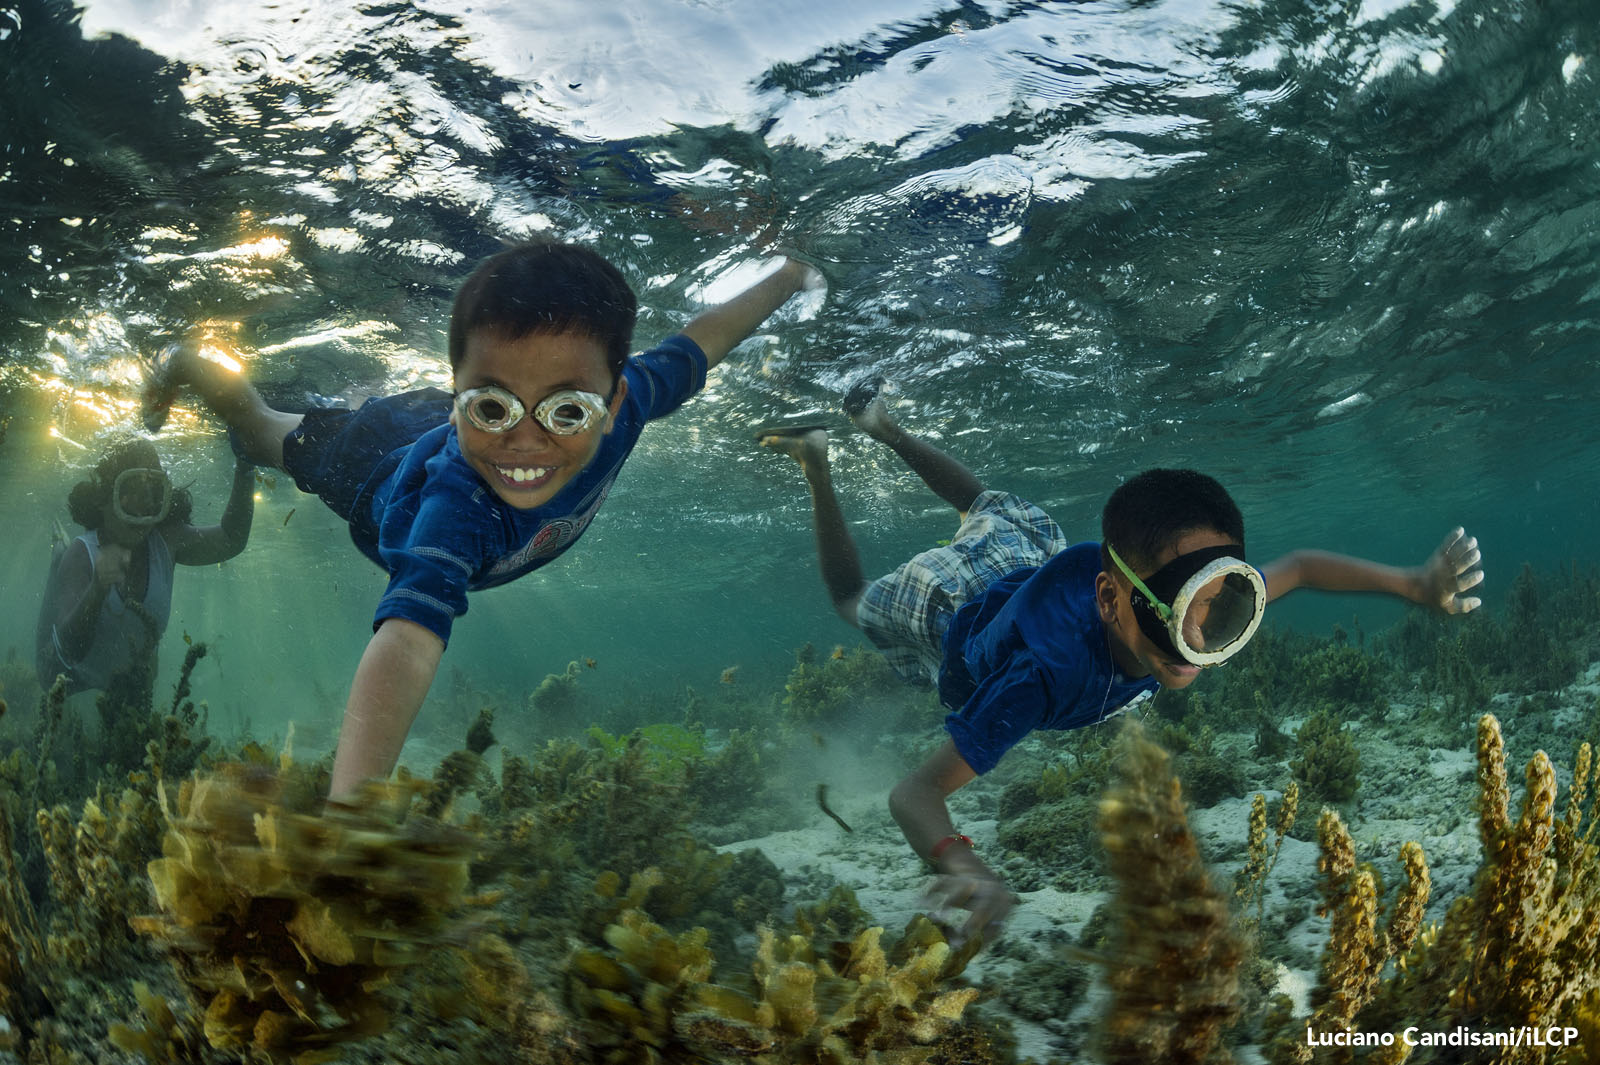 As night draws near, village kids swim out to the reef. Unless we can protect Danajon Bank, younger generations will face a difficult future. Luciano Candisani/iLCP